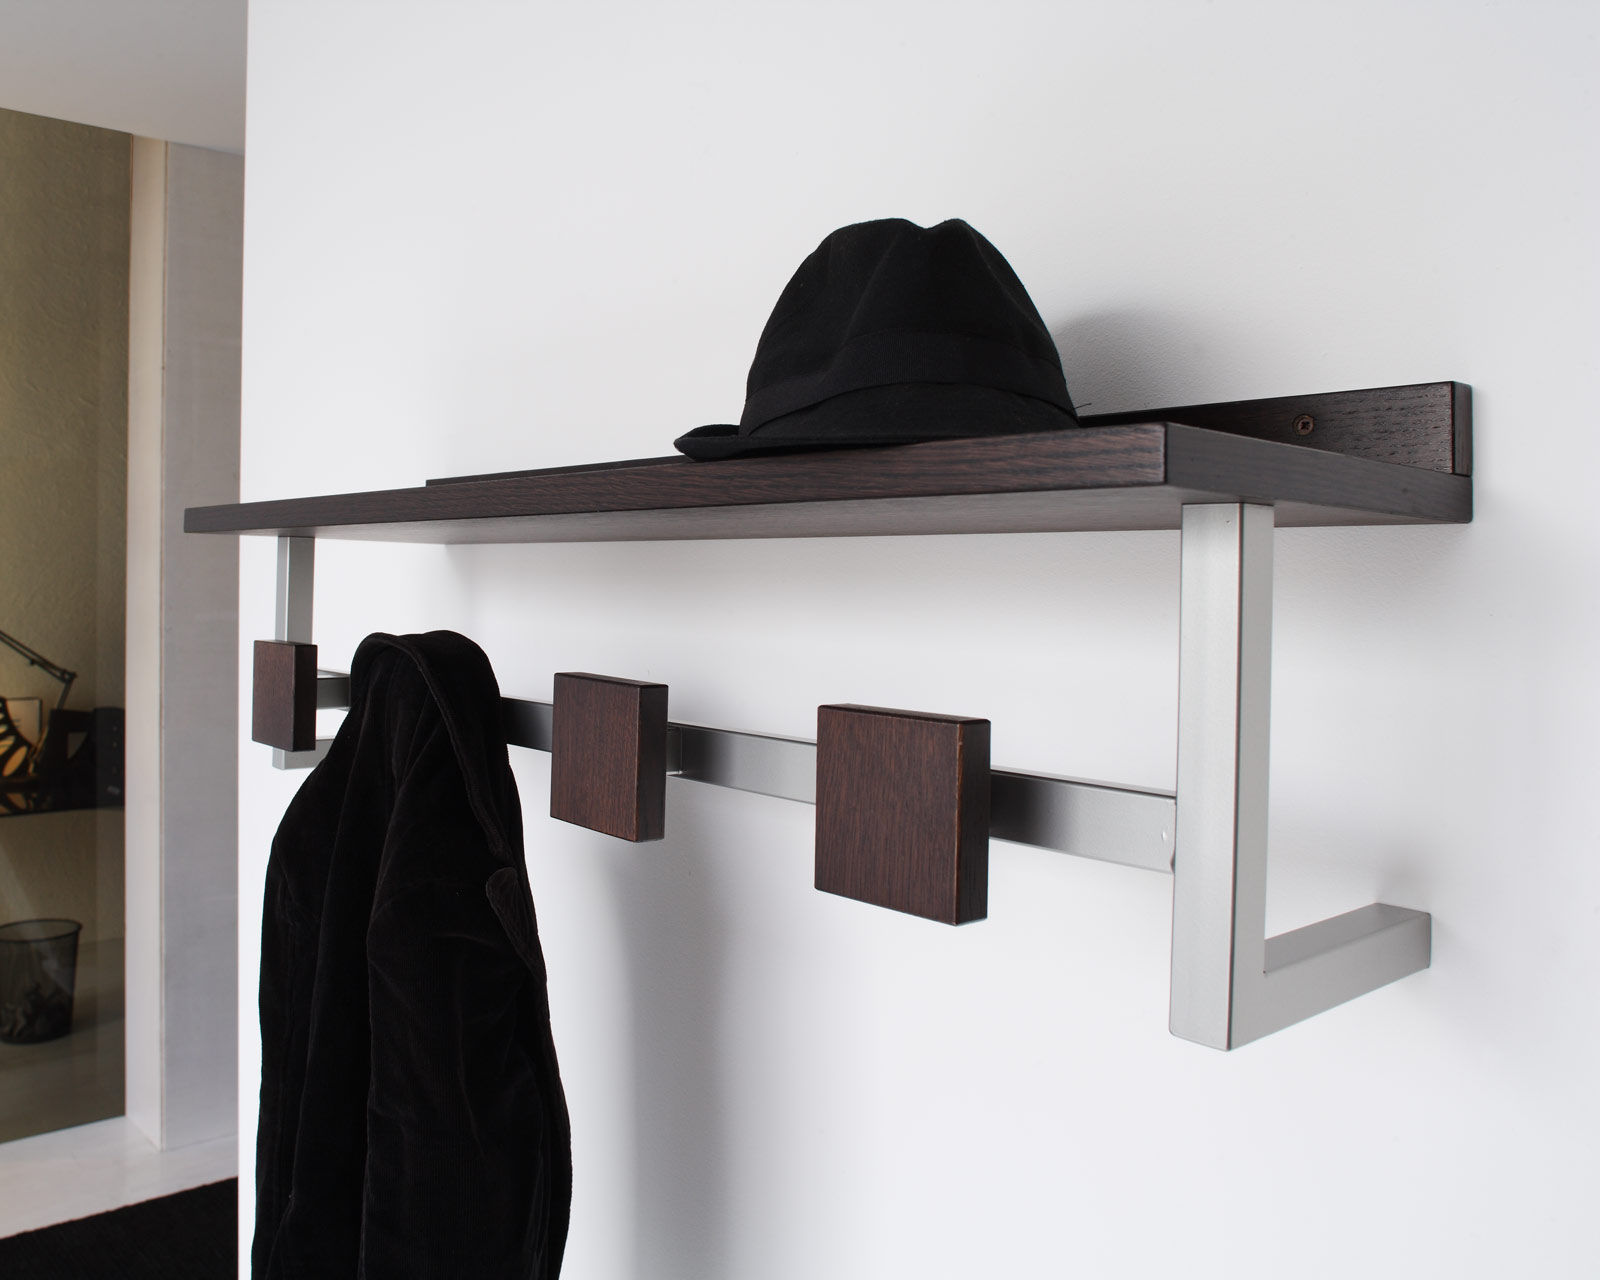 Install Awesome Decorative Wall Hooks for Coat and Hat Shelf on White Painted Wall in Entry Space